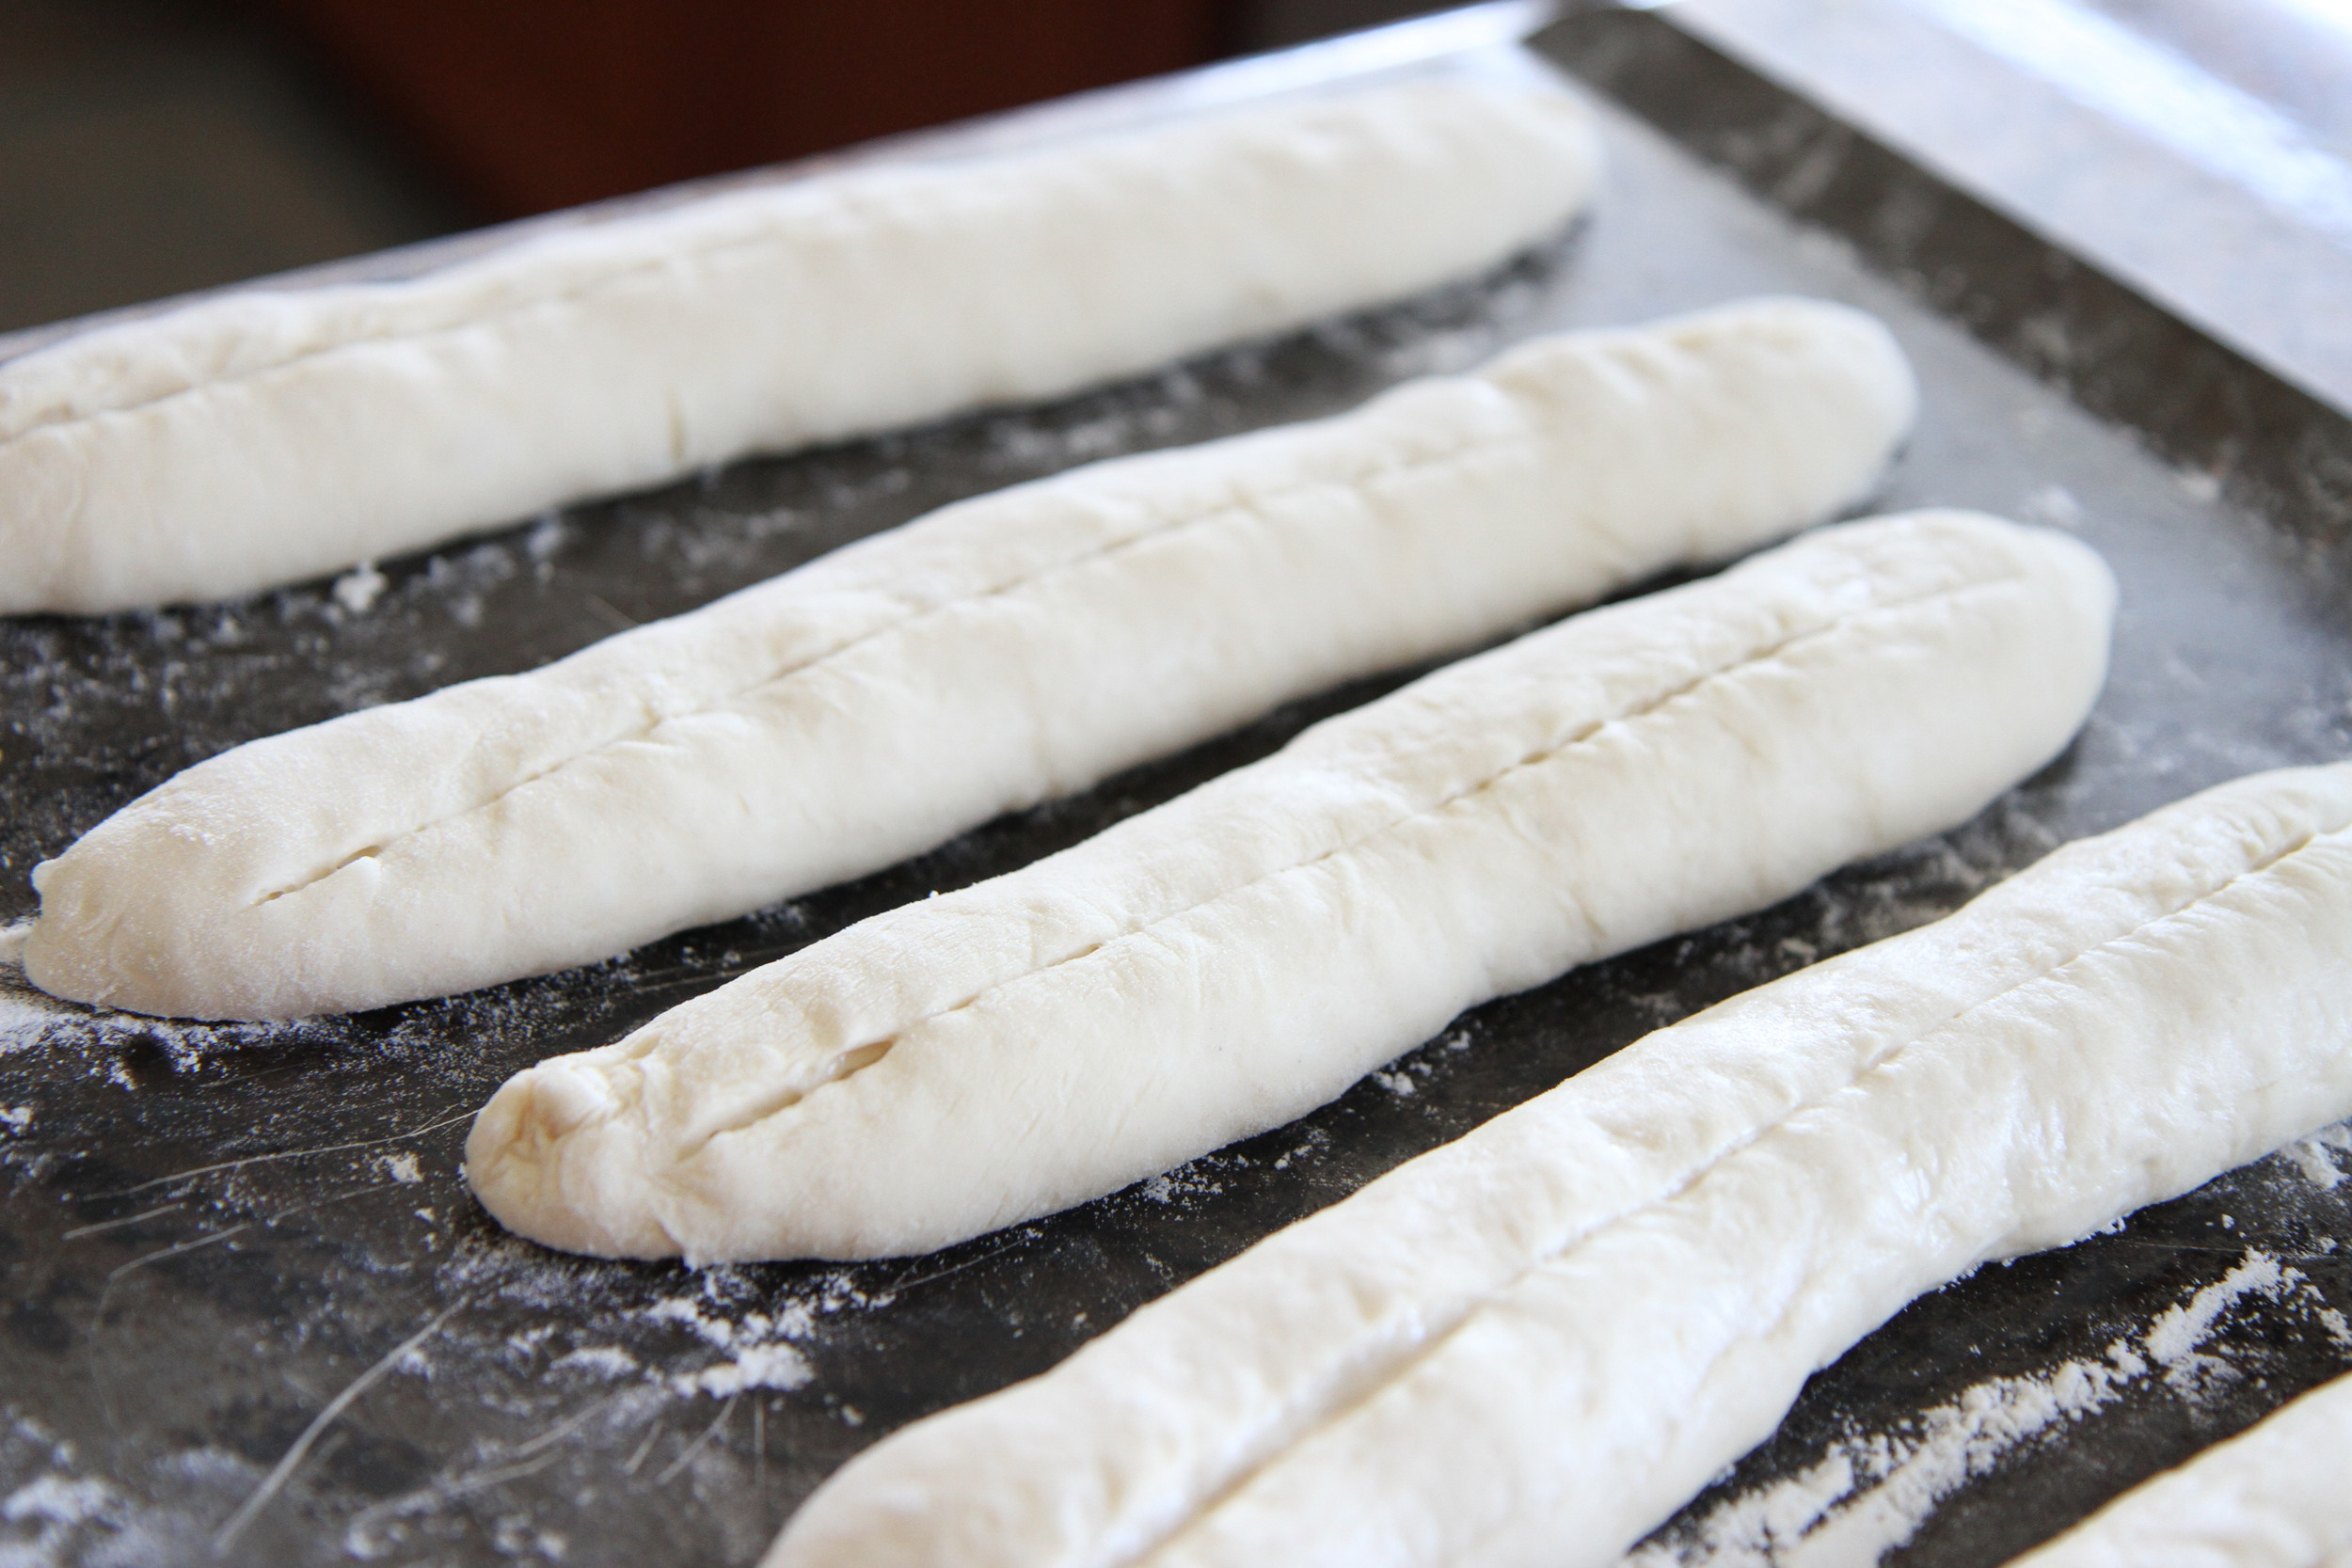 Roll out the dough into a log and make a slash down the middle